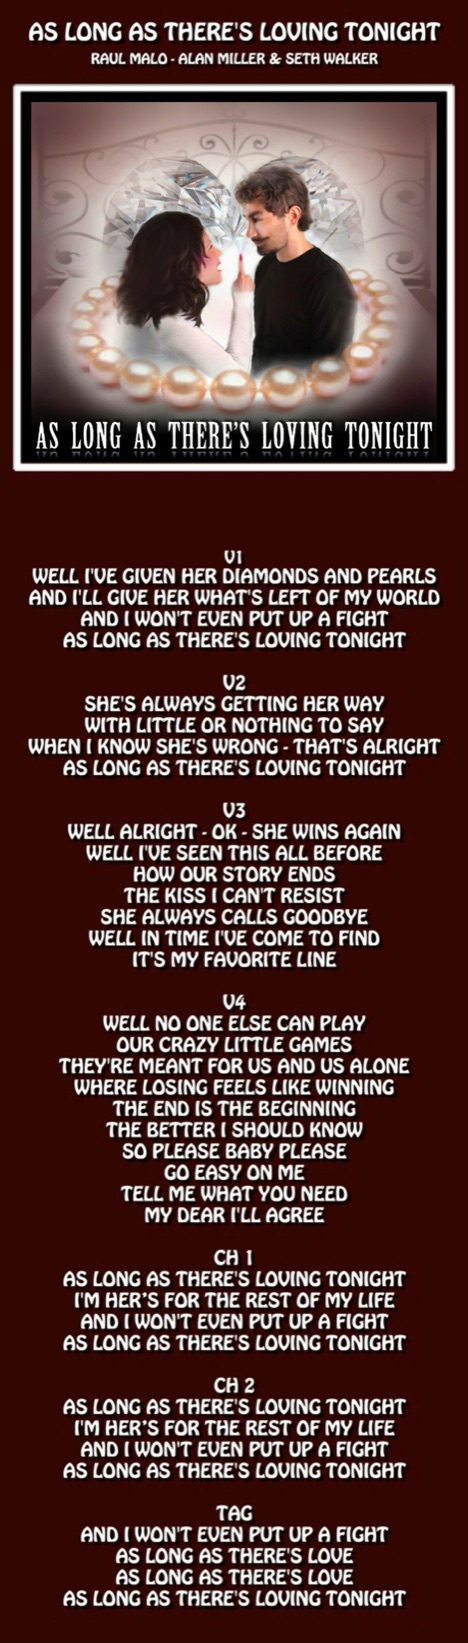 Miller's Tale songs' lyrics to read while you listen to the